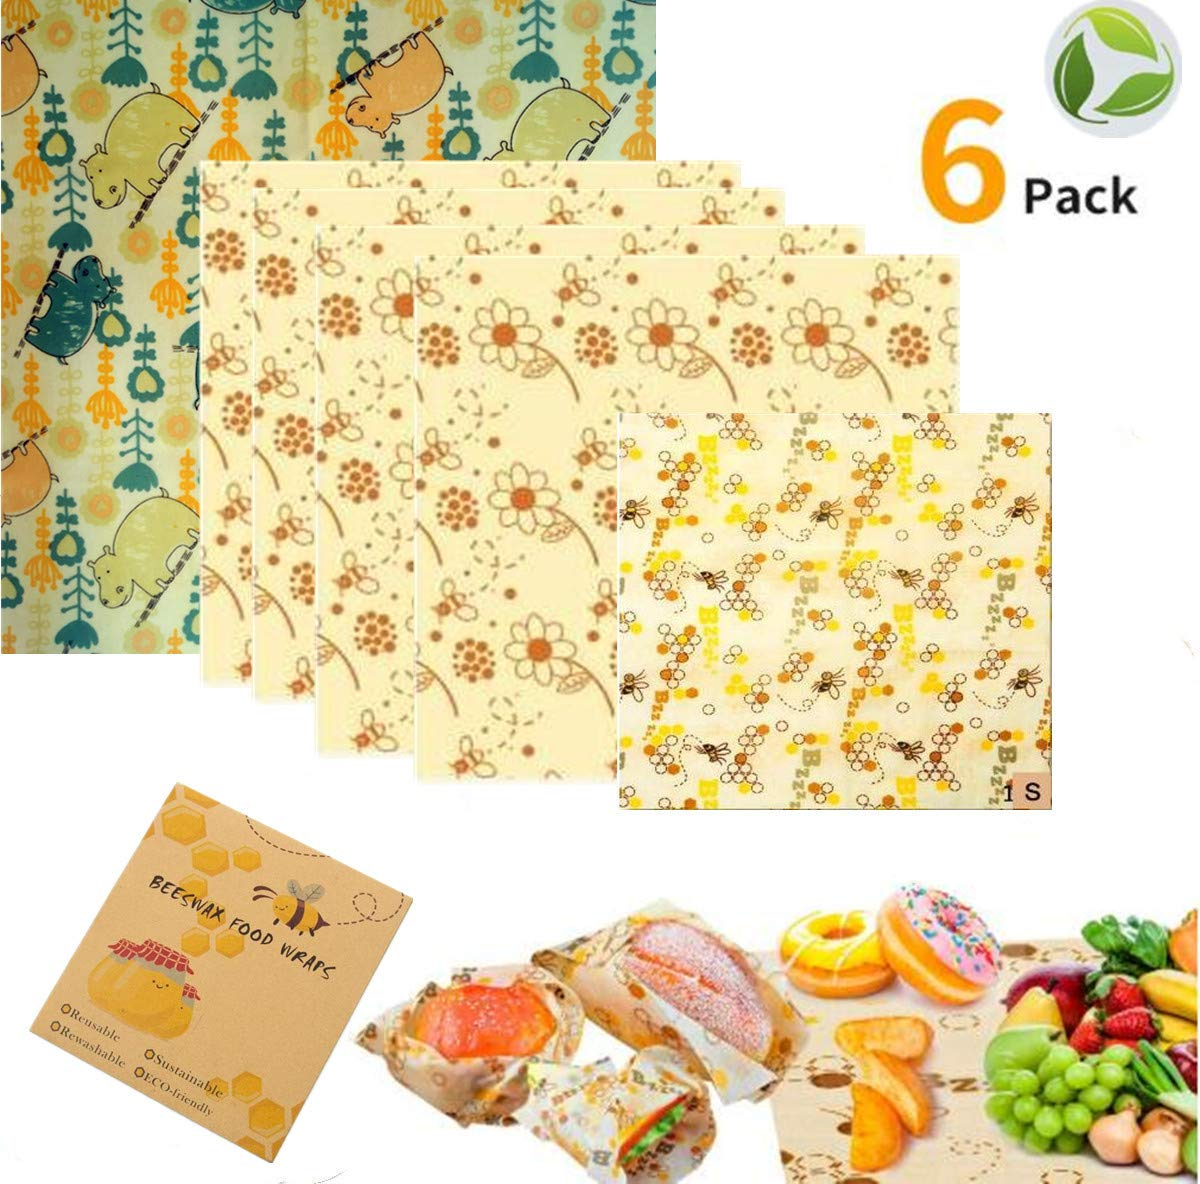 Beeswax Wraps Set of | Organic Natural Food Storage | Zero Waste Cheese and Sandwich Wrappers | Sustainable Plastic Free Washable Bowl Covers (A)